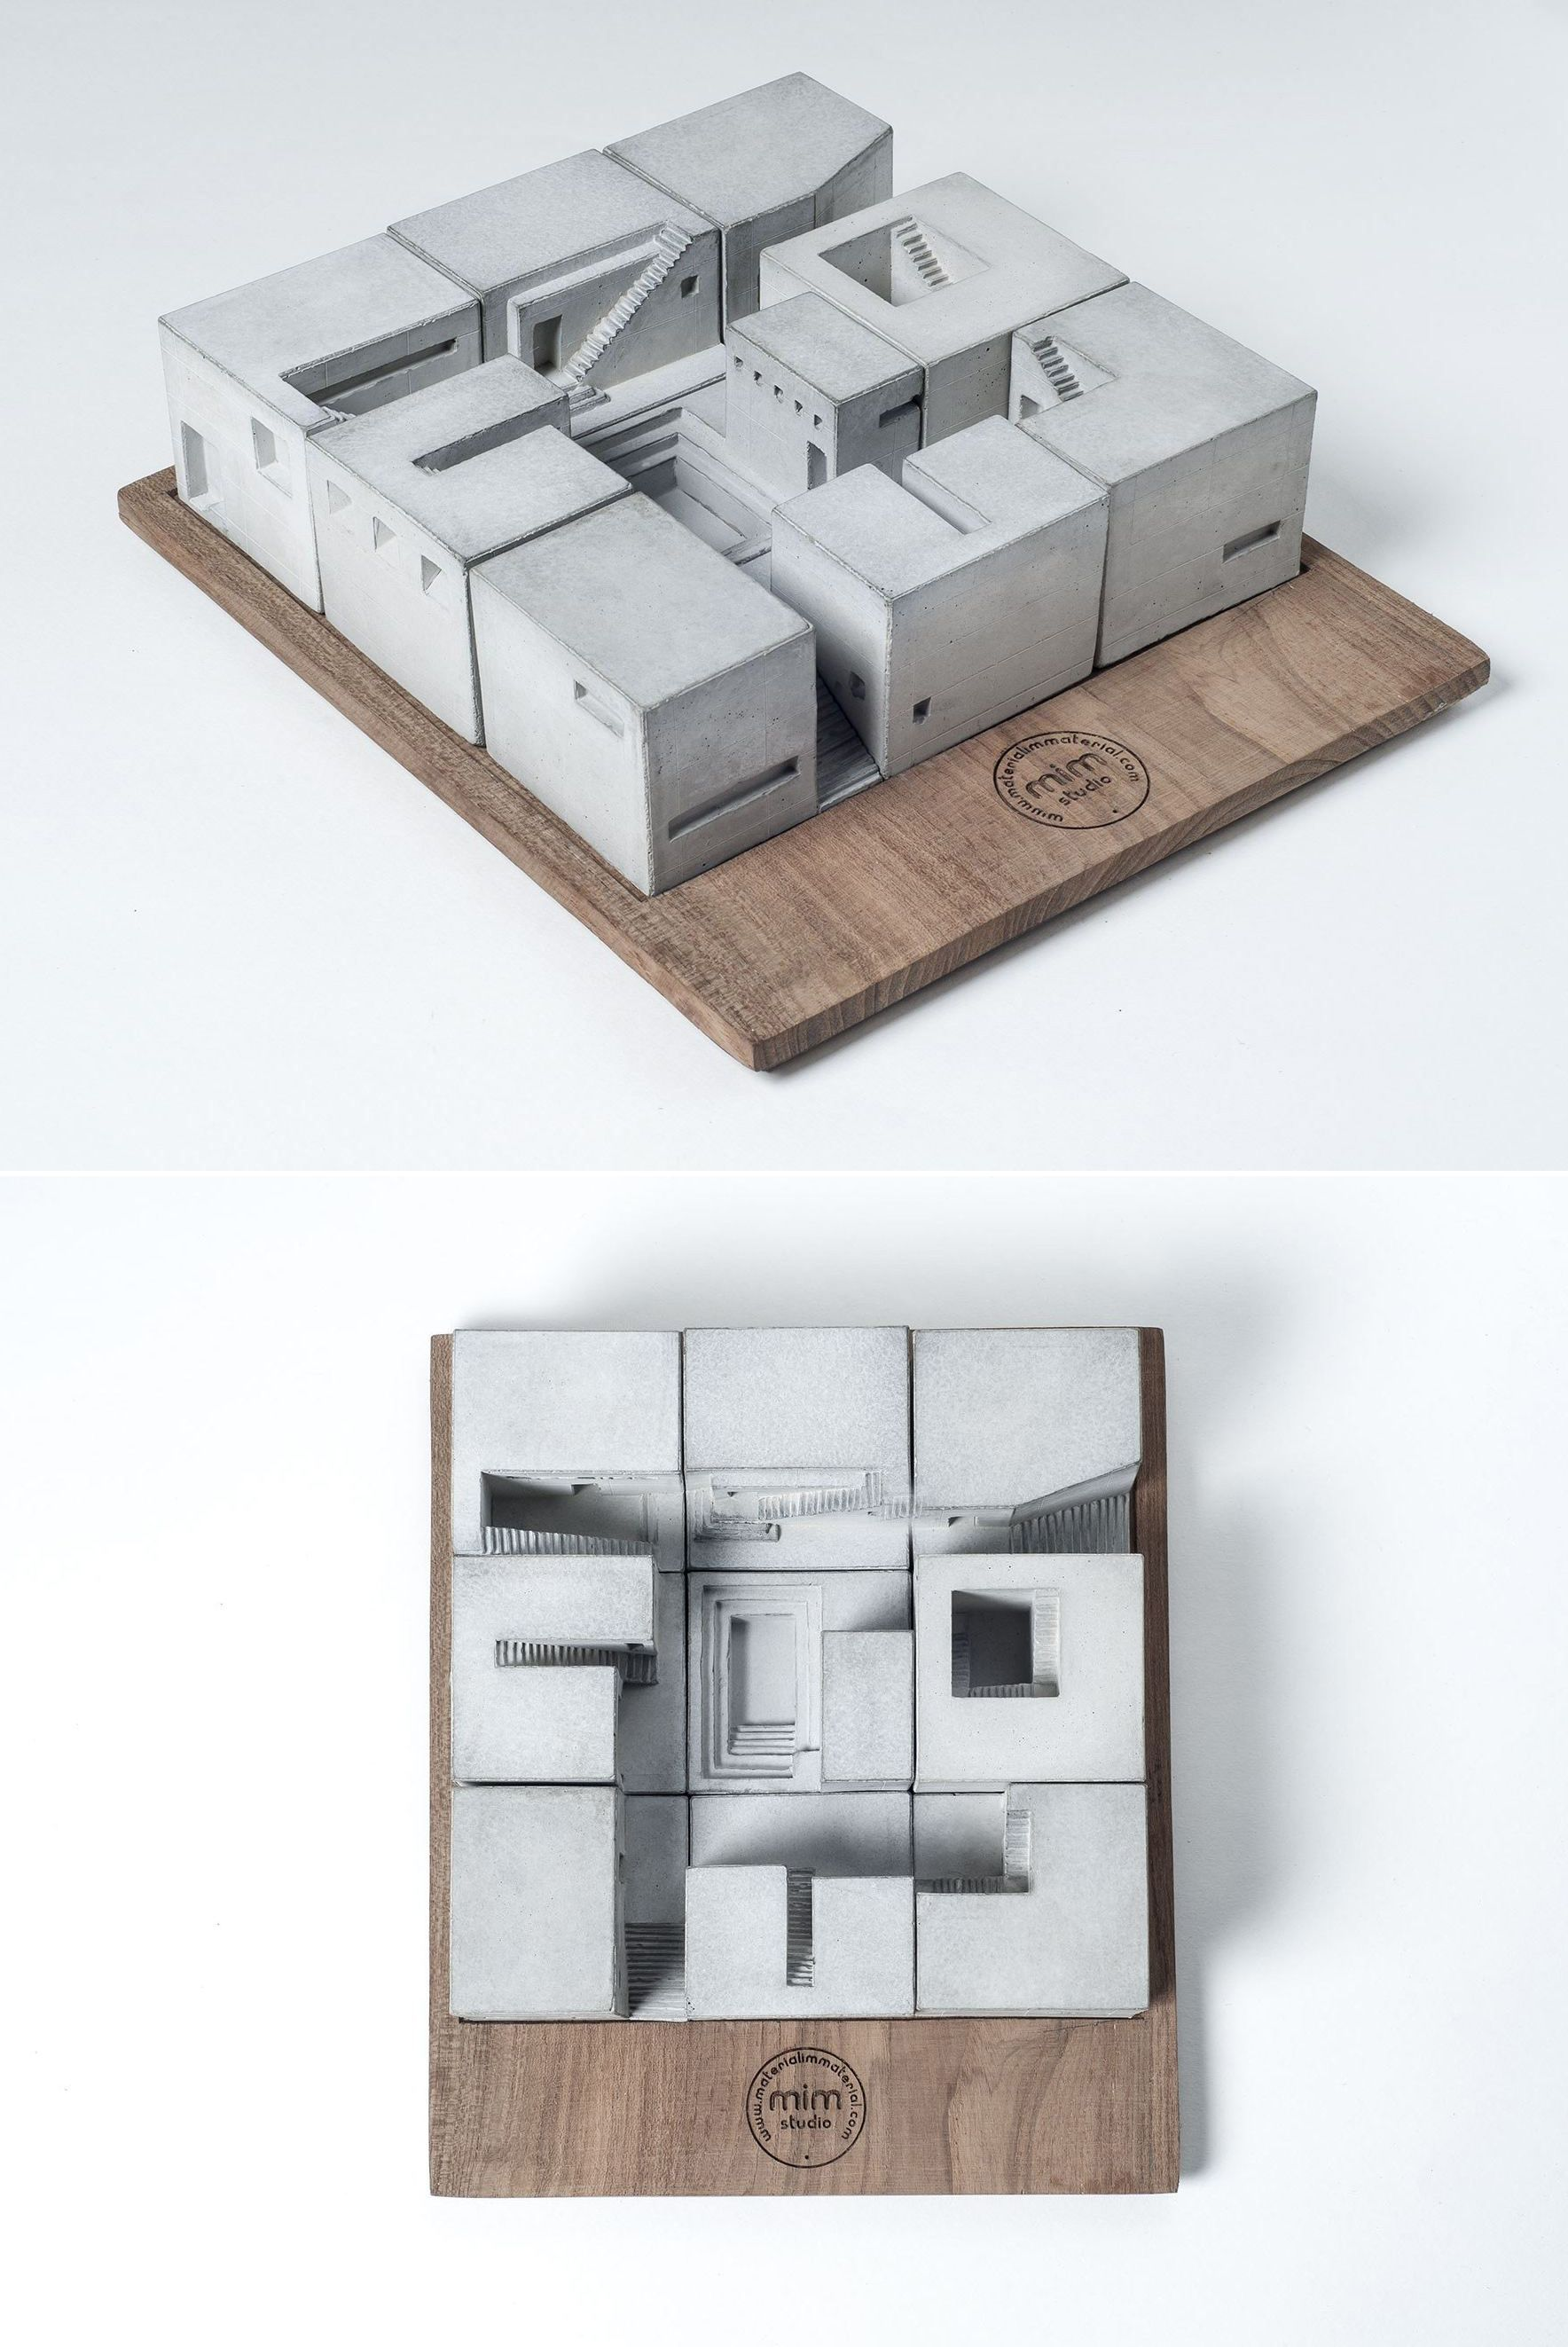 Picture Book Illustration Making An Architectural Model: Miniature Concrete Homes (Complete Set)